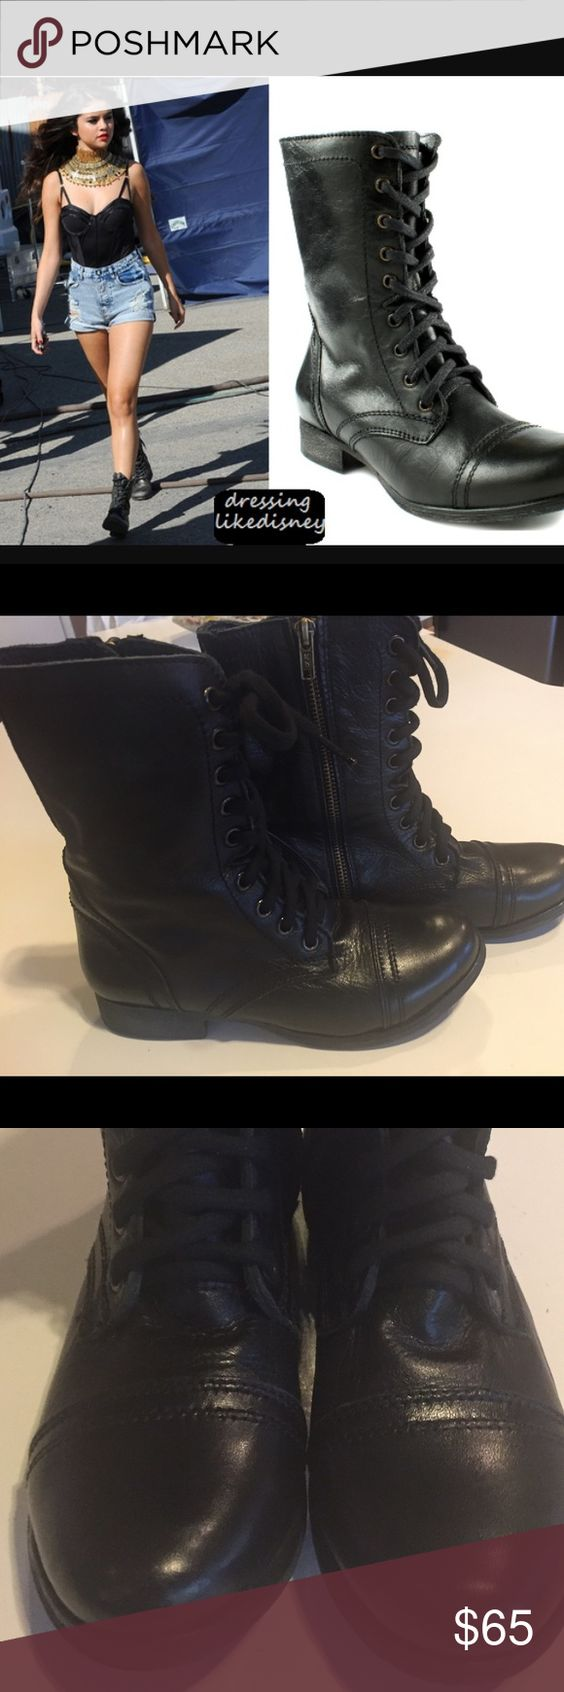 """New Steve Madden """"Troopa"""" Boots Black Size 5.5 Steve Madden """"Troopa"""" Boots Black Size 5.5.  New and never worn! So cute! Steve Madden Shoes Ankle Boots & Booties"""